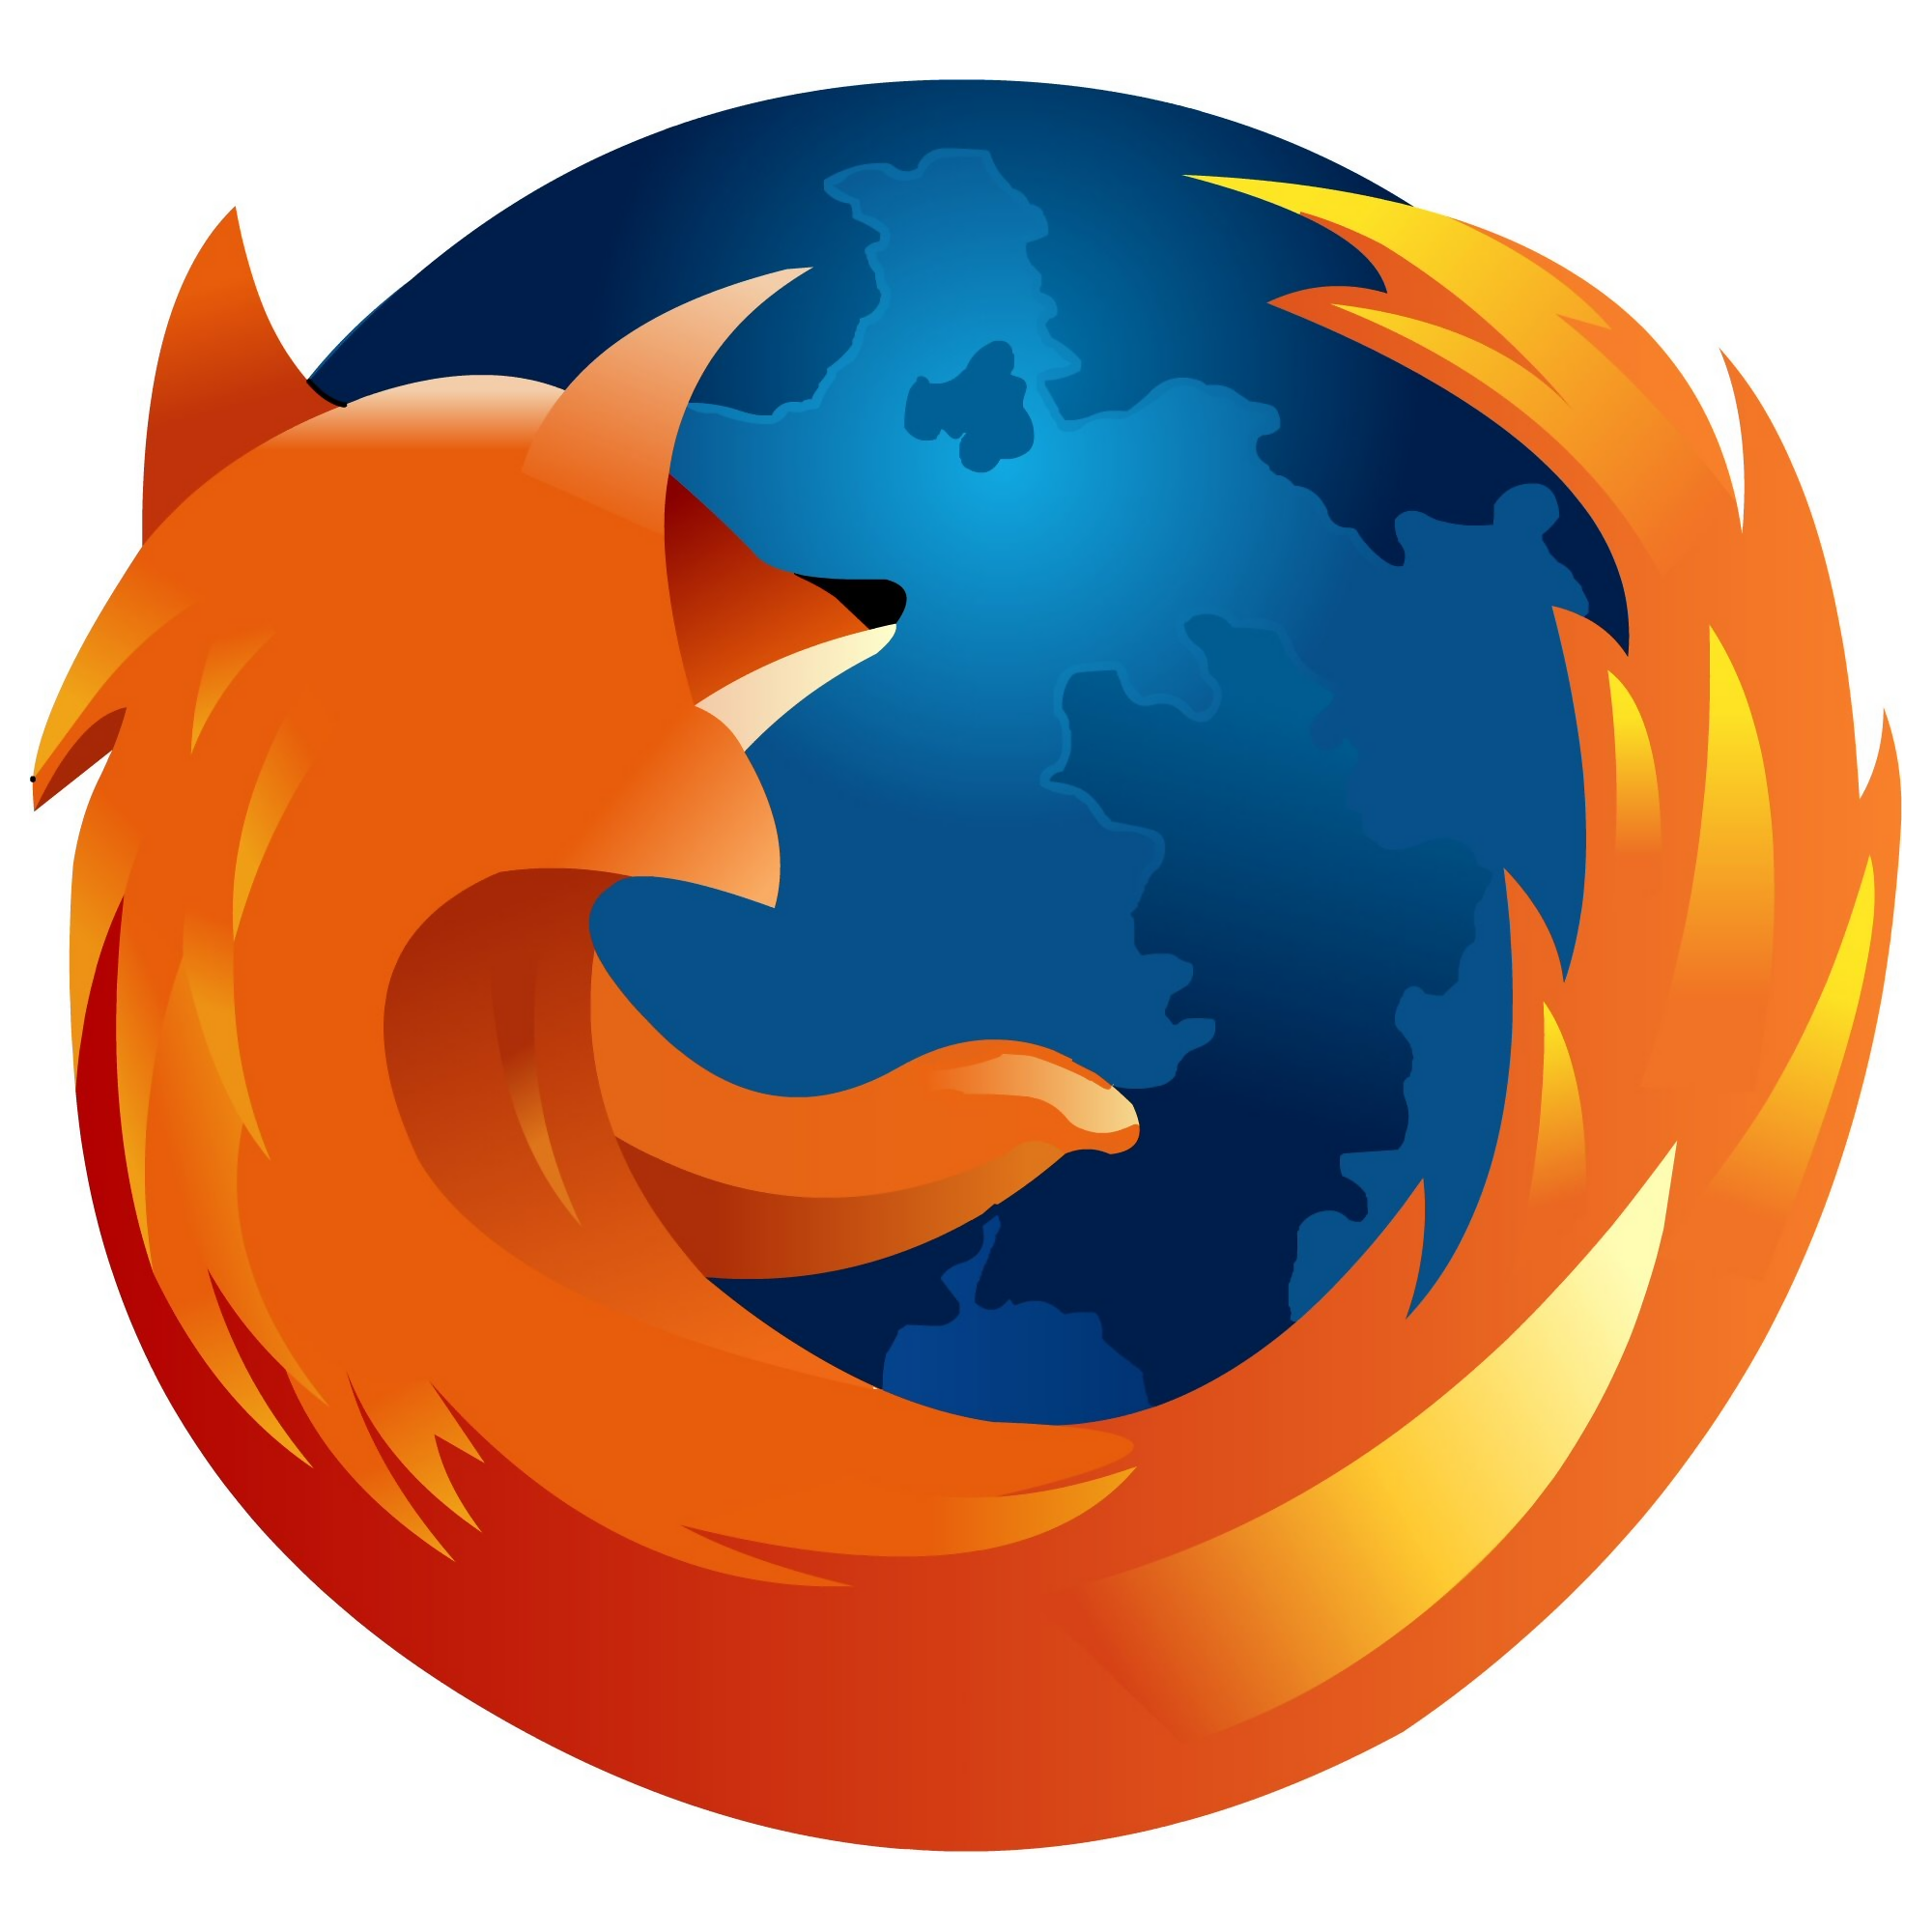 Firefox transparent. Png images free download